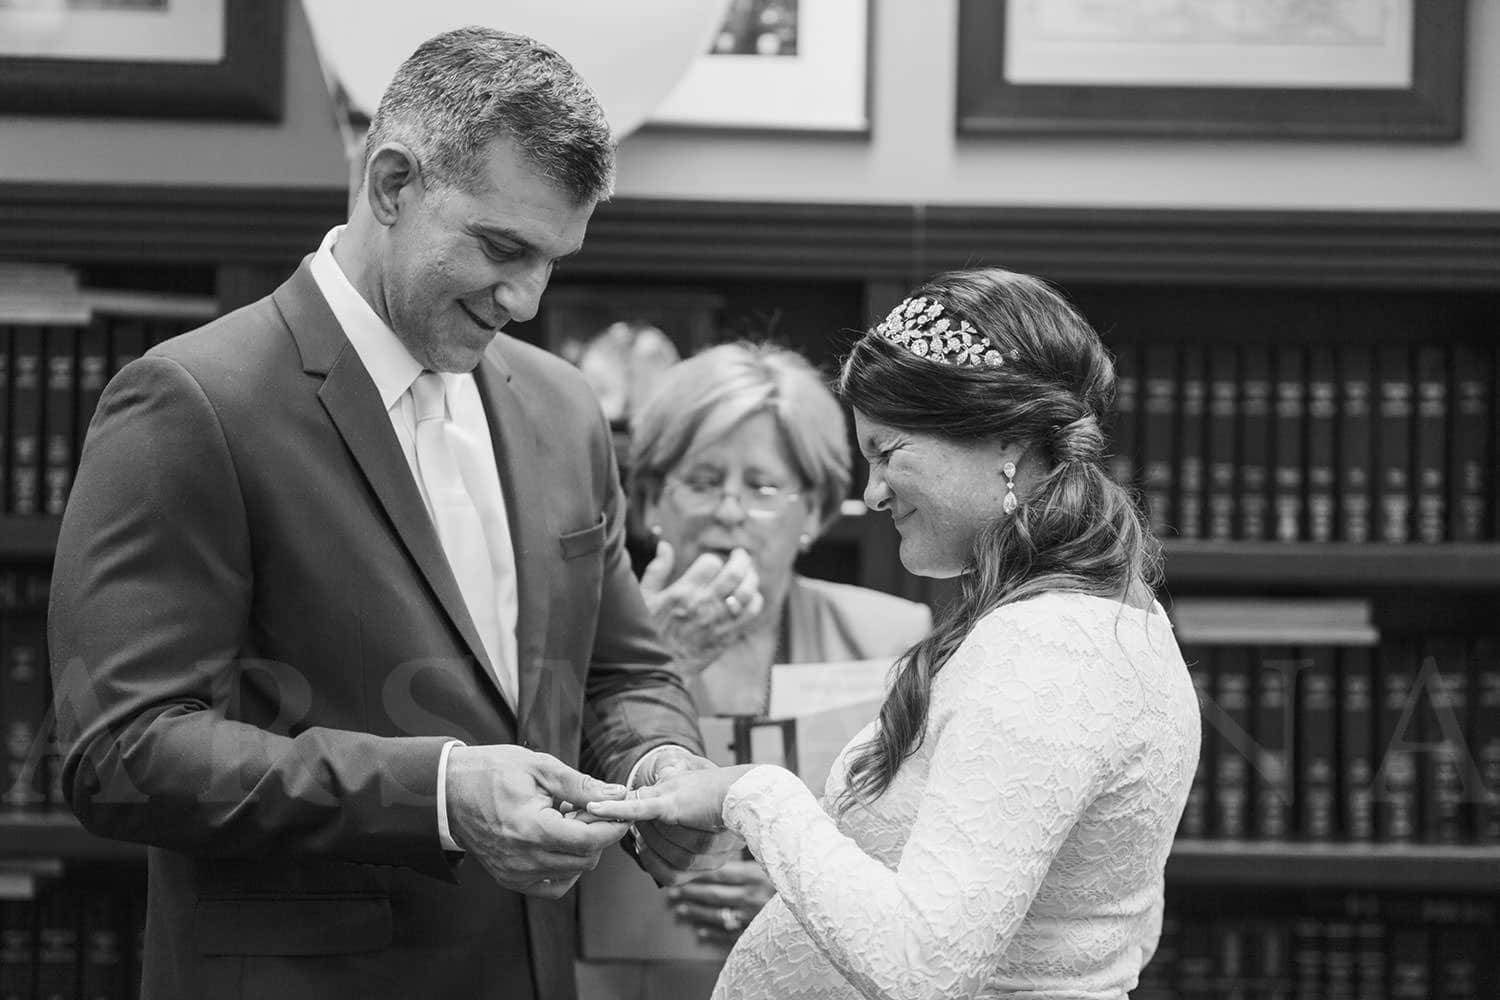 married at government center city hall wedding photographer boston ma civil ceremony